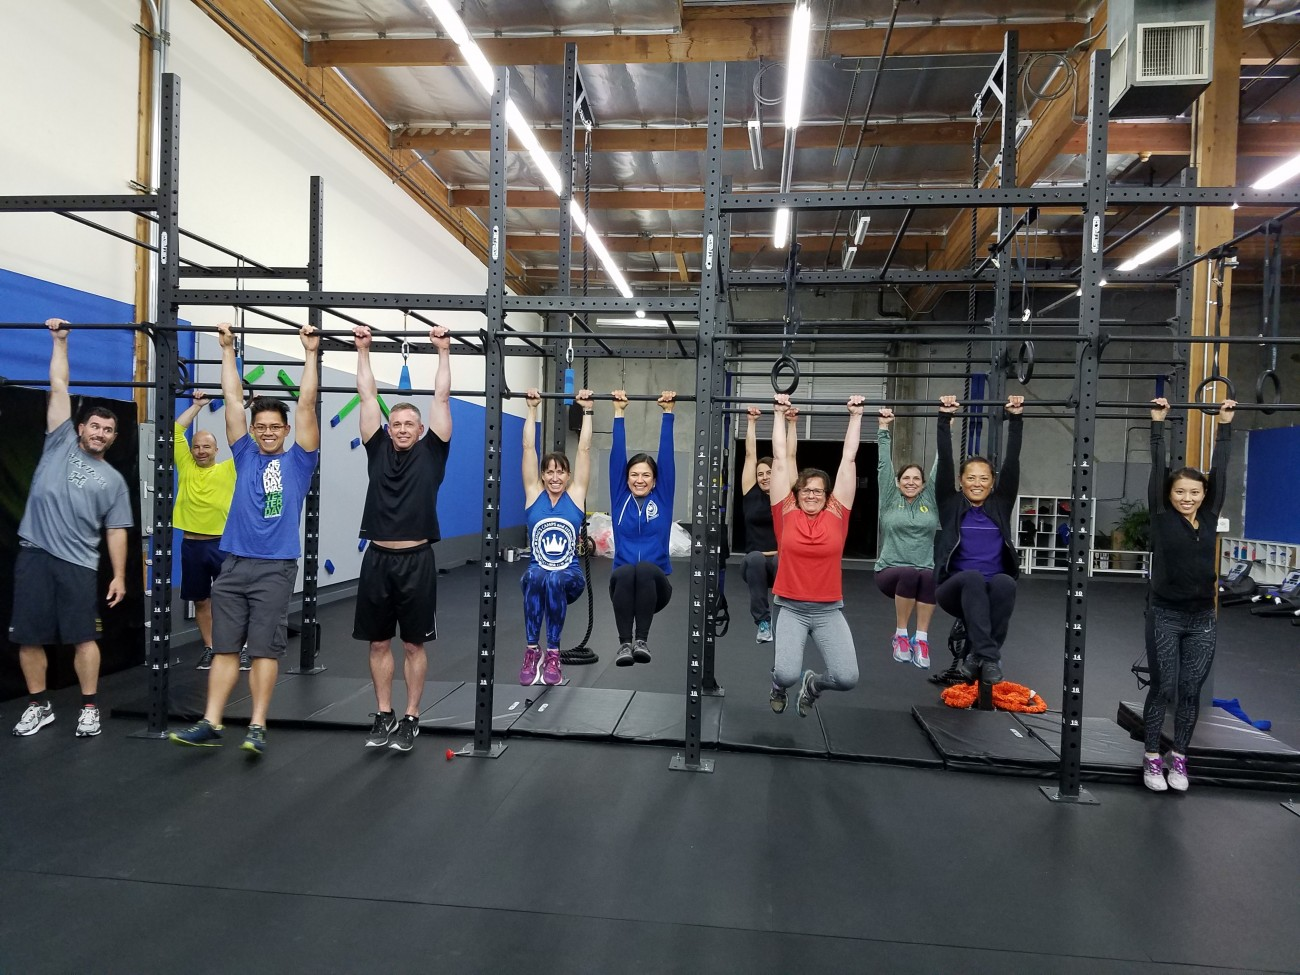 OCR Training Camp Group